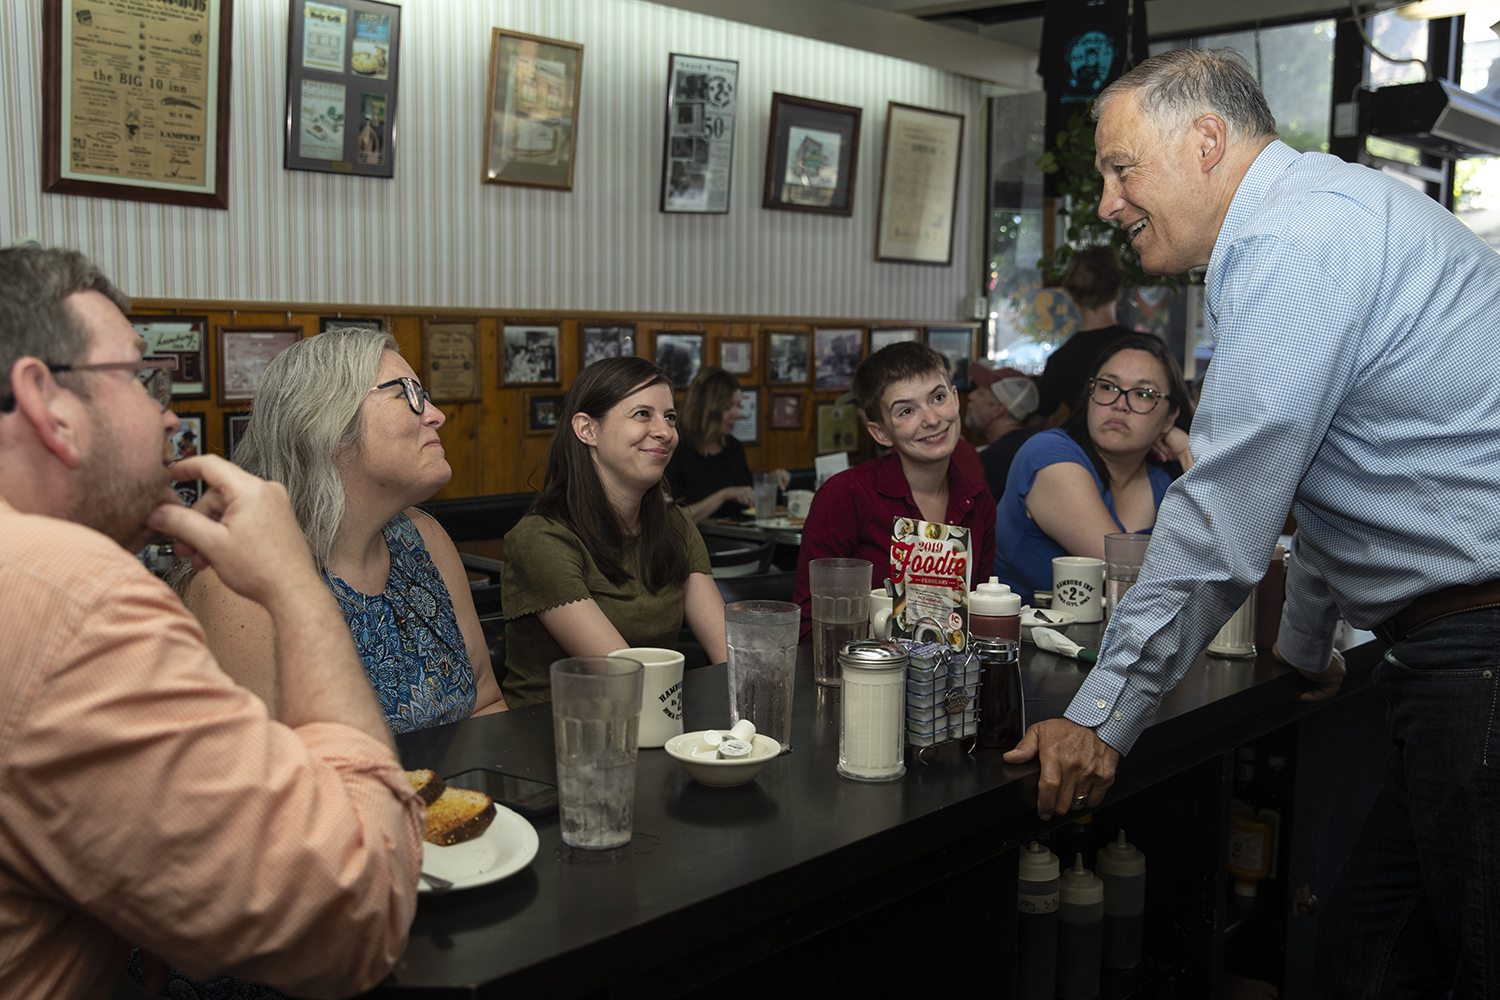 Governor of Washington Jay Inslee speaks with professors during his meeting with several non-tenured faculty members at the Hamburg Inn in Iowa City on July 15, 2019. Faculty members spoke with Inslee about some of the concerns they have regarding pay and job security. (Katie Goodale/The Daily Iowan)